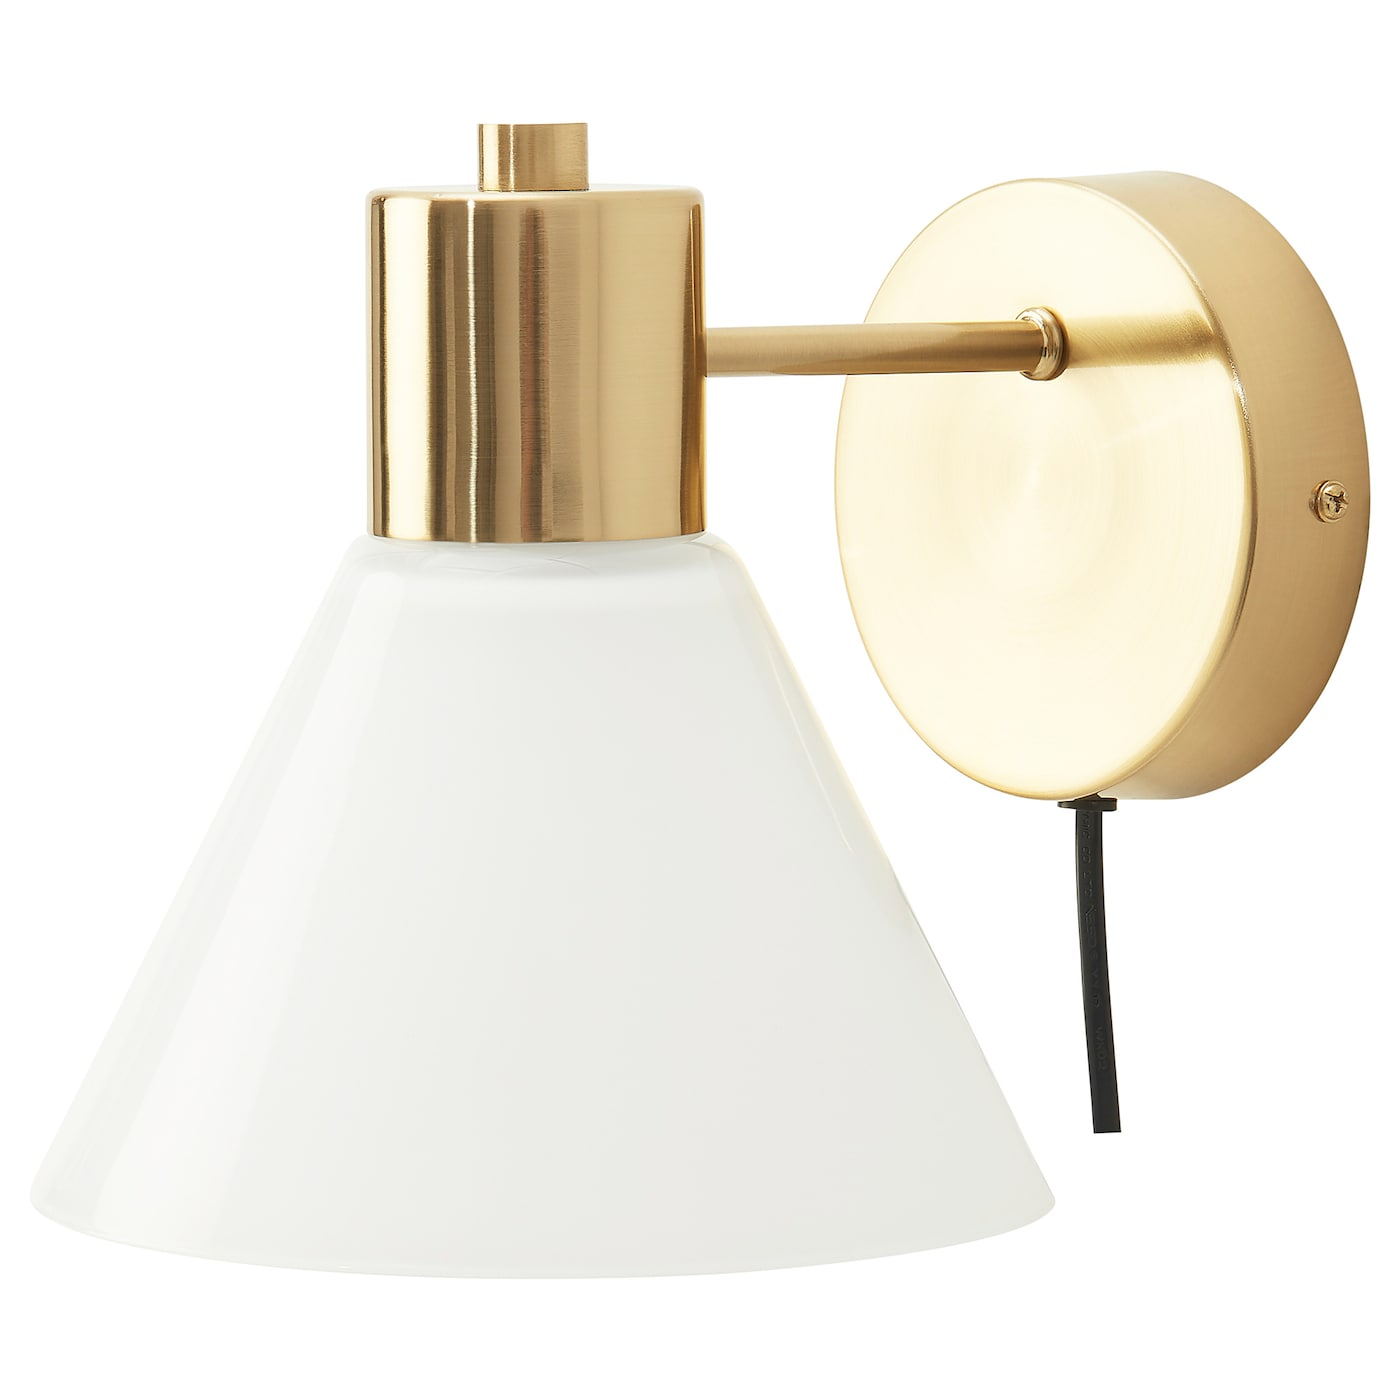 FLUGBO Wall lamp - brass color/glass